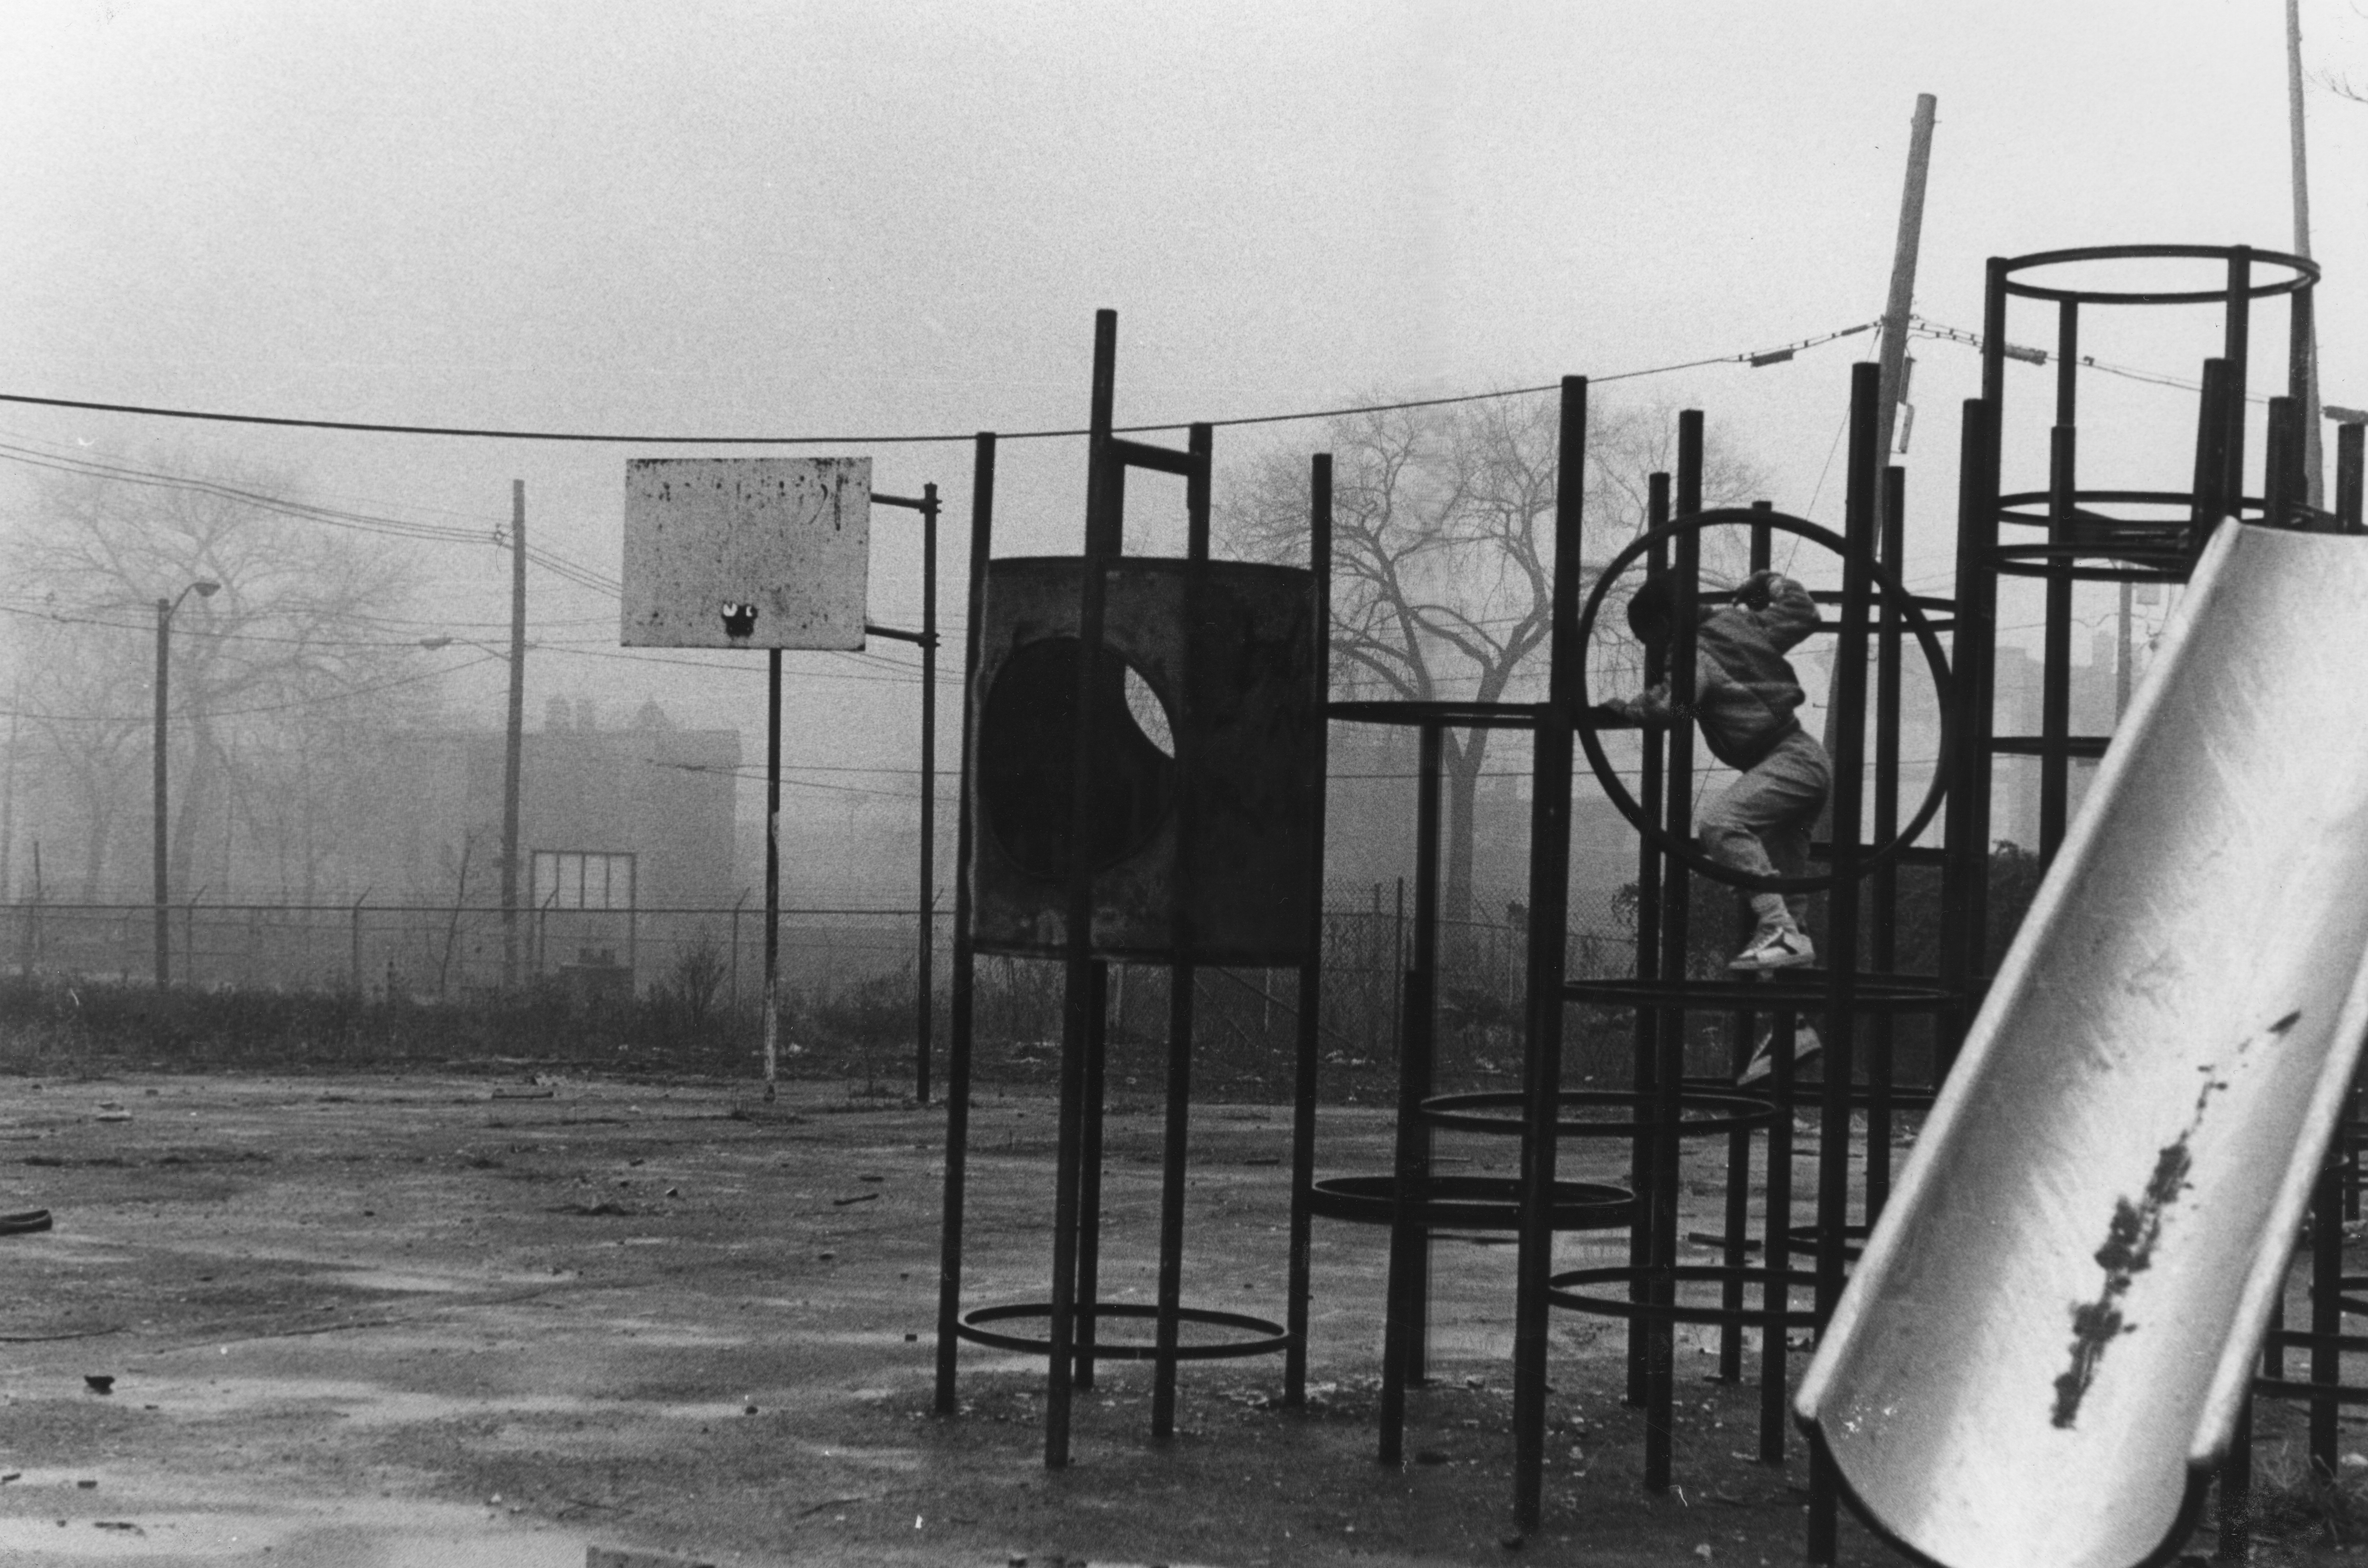 21 - PLAYGROUND IN FOG, CLOSE TO ST. ANNE'S CHURCH, 12/31/1982 (BINDER #1, FILE #42, FRAME #11-11A)